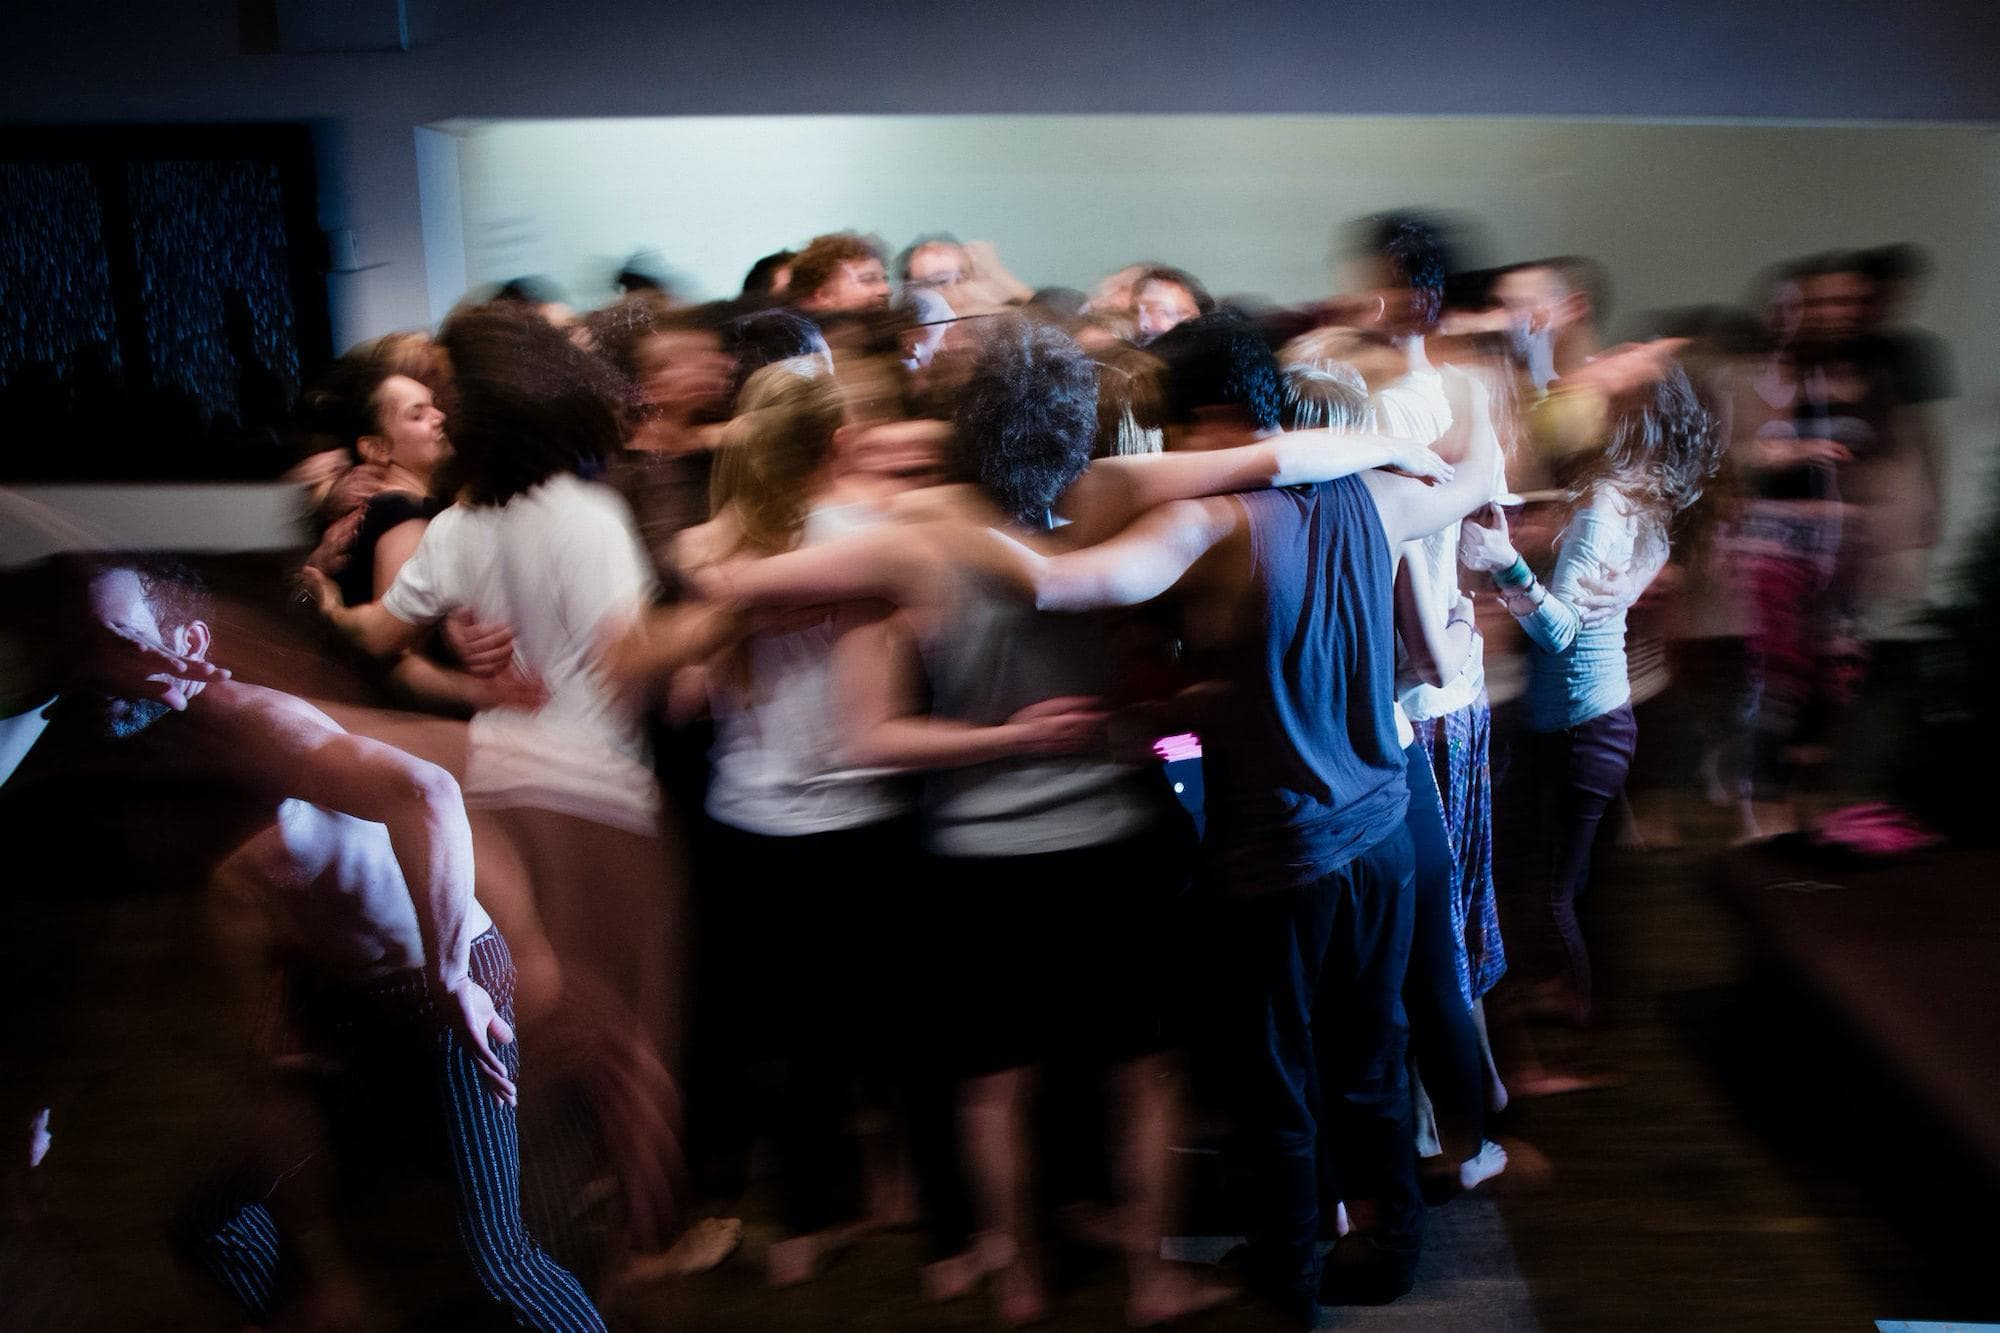 The dancers come together for a group embrace. Deidre Schoo for The New York Times